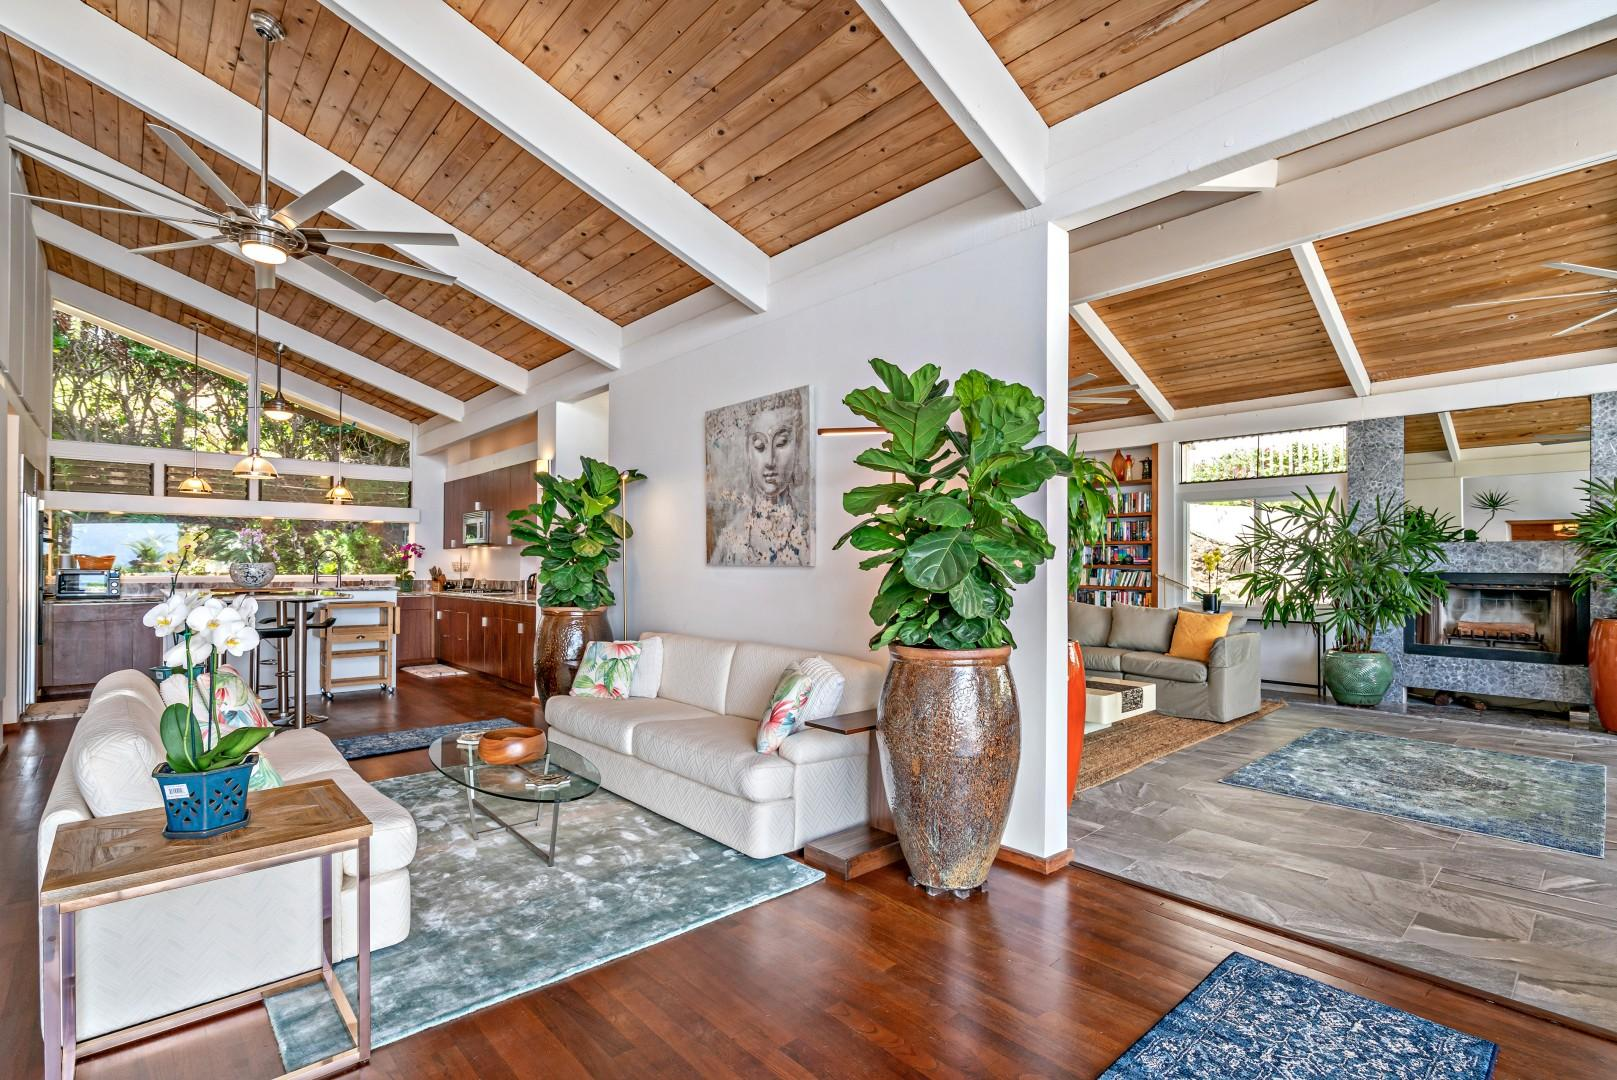 Open floor plan with sliding glass doors that open up to the pool deck.